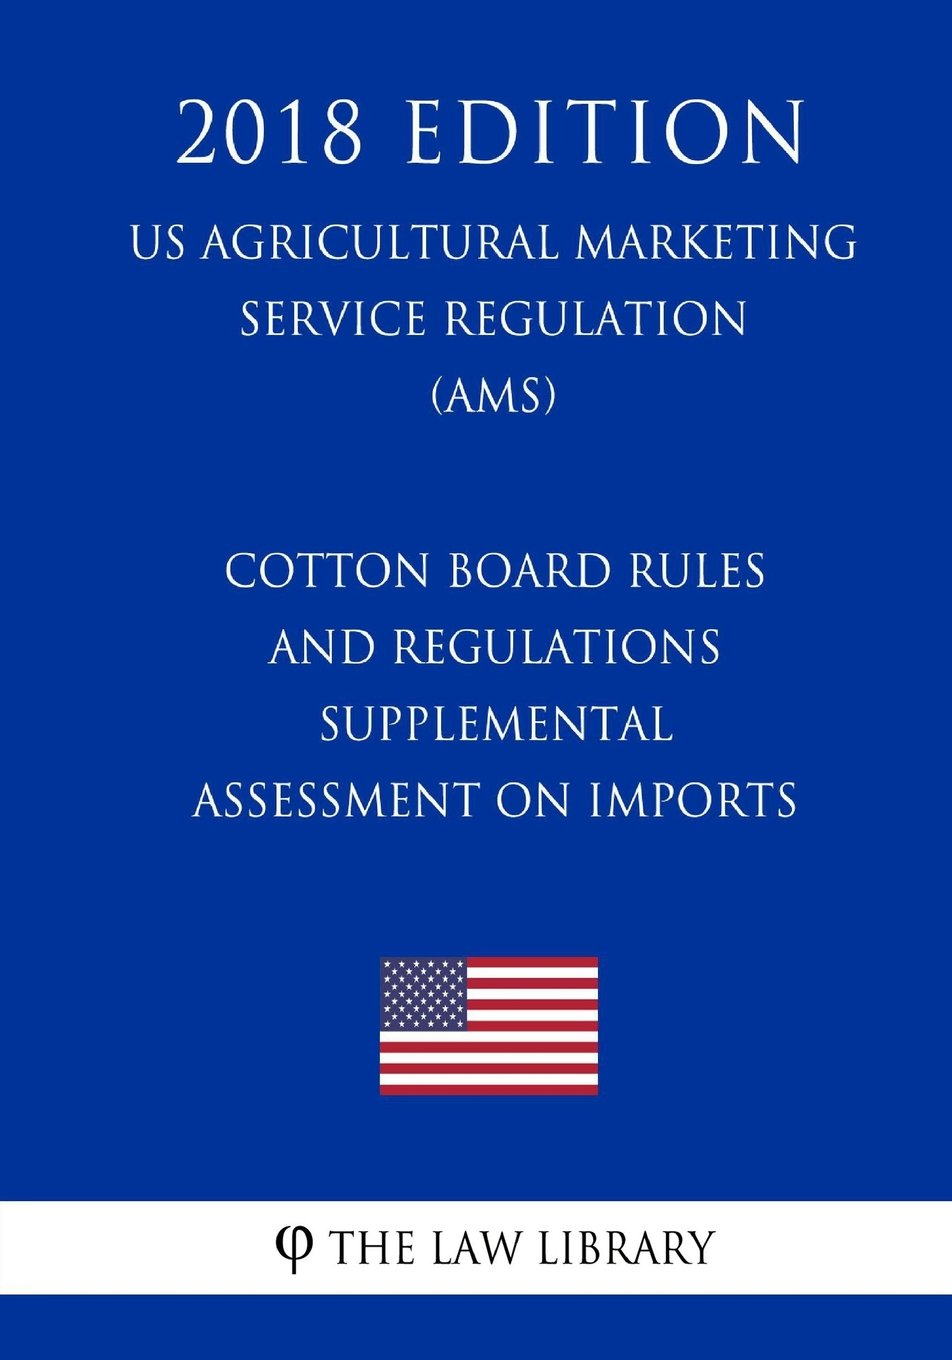 Read Online Cotton Board Rules and Regulations - Supplemental Assessment on Imports (US Agricultural Marketing Service Regulation) (AMS) (2018 Edition) pdf